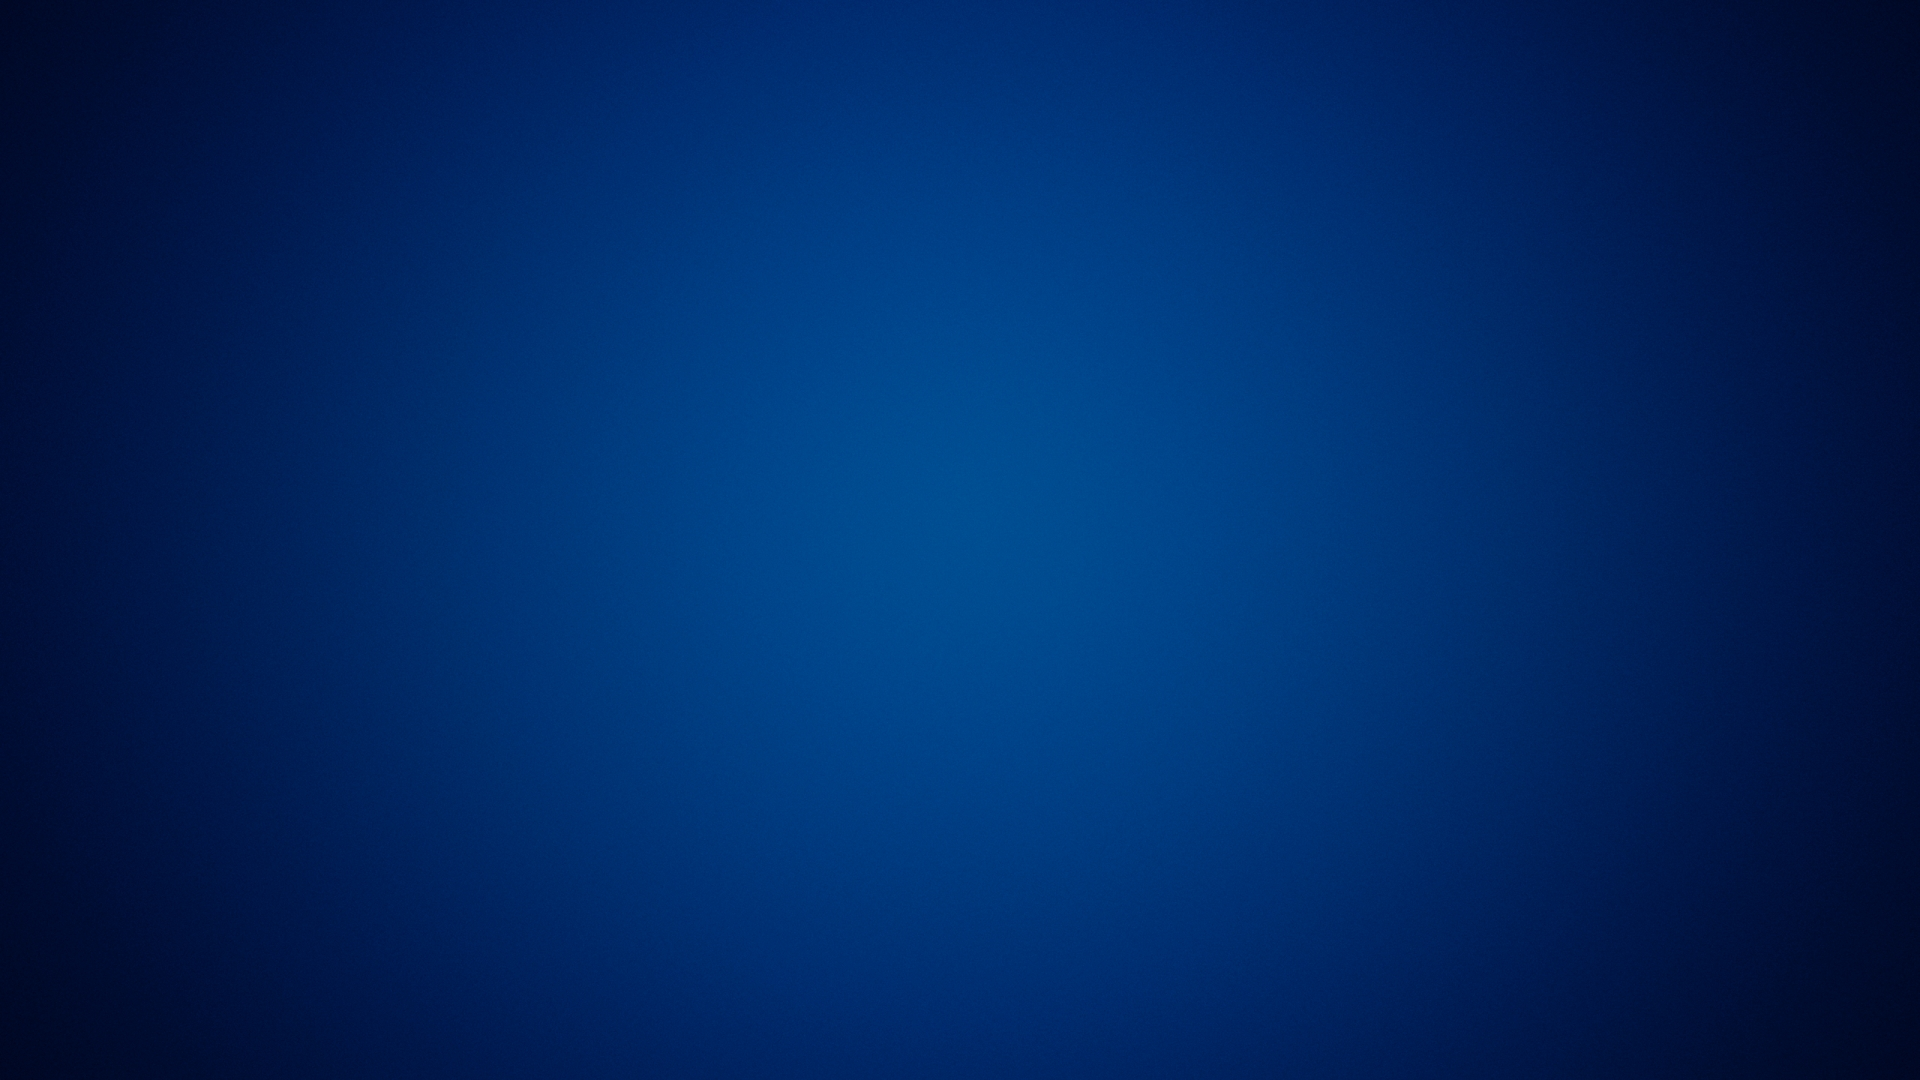 FHDQ Images CollPection: Blue